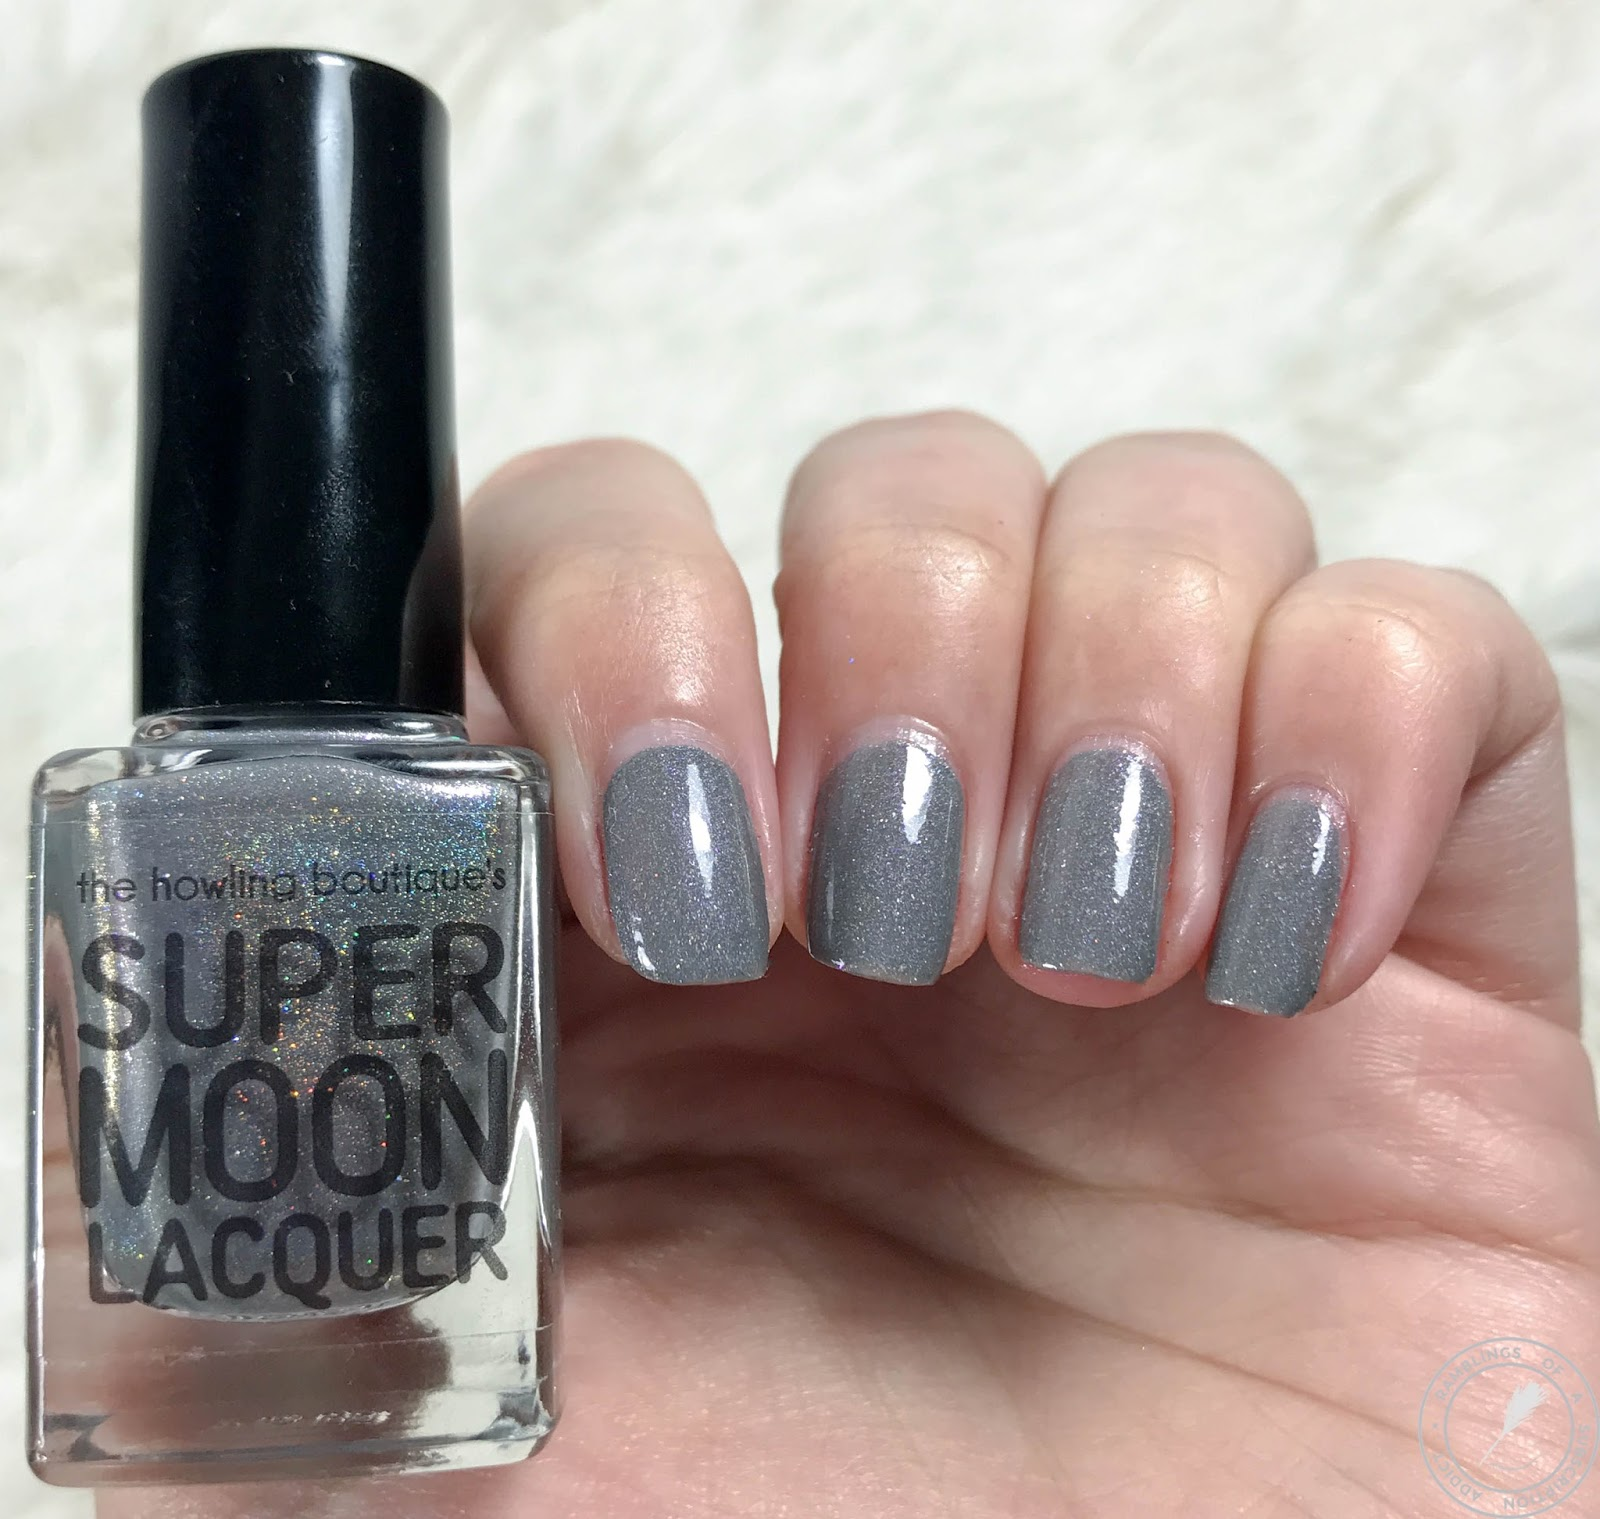 The Howling Boutique's Supermoon Lacquer - Rainbow Moon